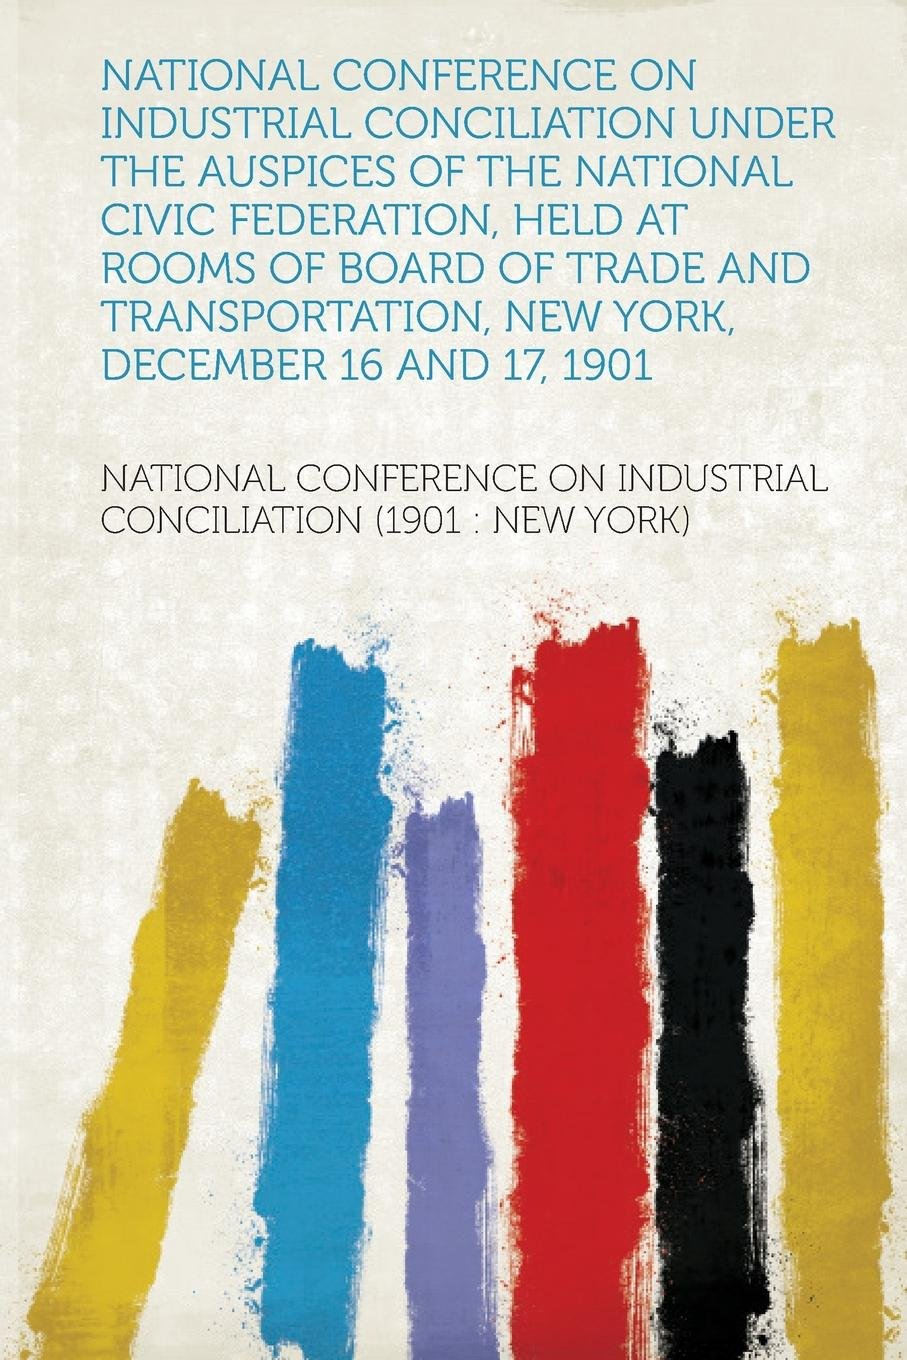 Download National Conference on Industrial Conciliation Under the Auspices of the National Civic Federation, Held at Rooms of Board of Trade and Transportation, New York, December 16 and 17, 1901 pdf epub